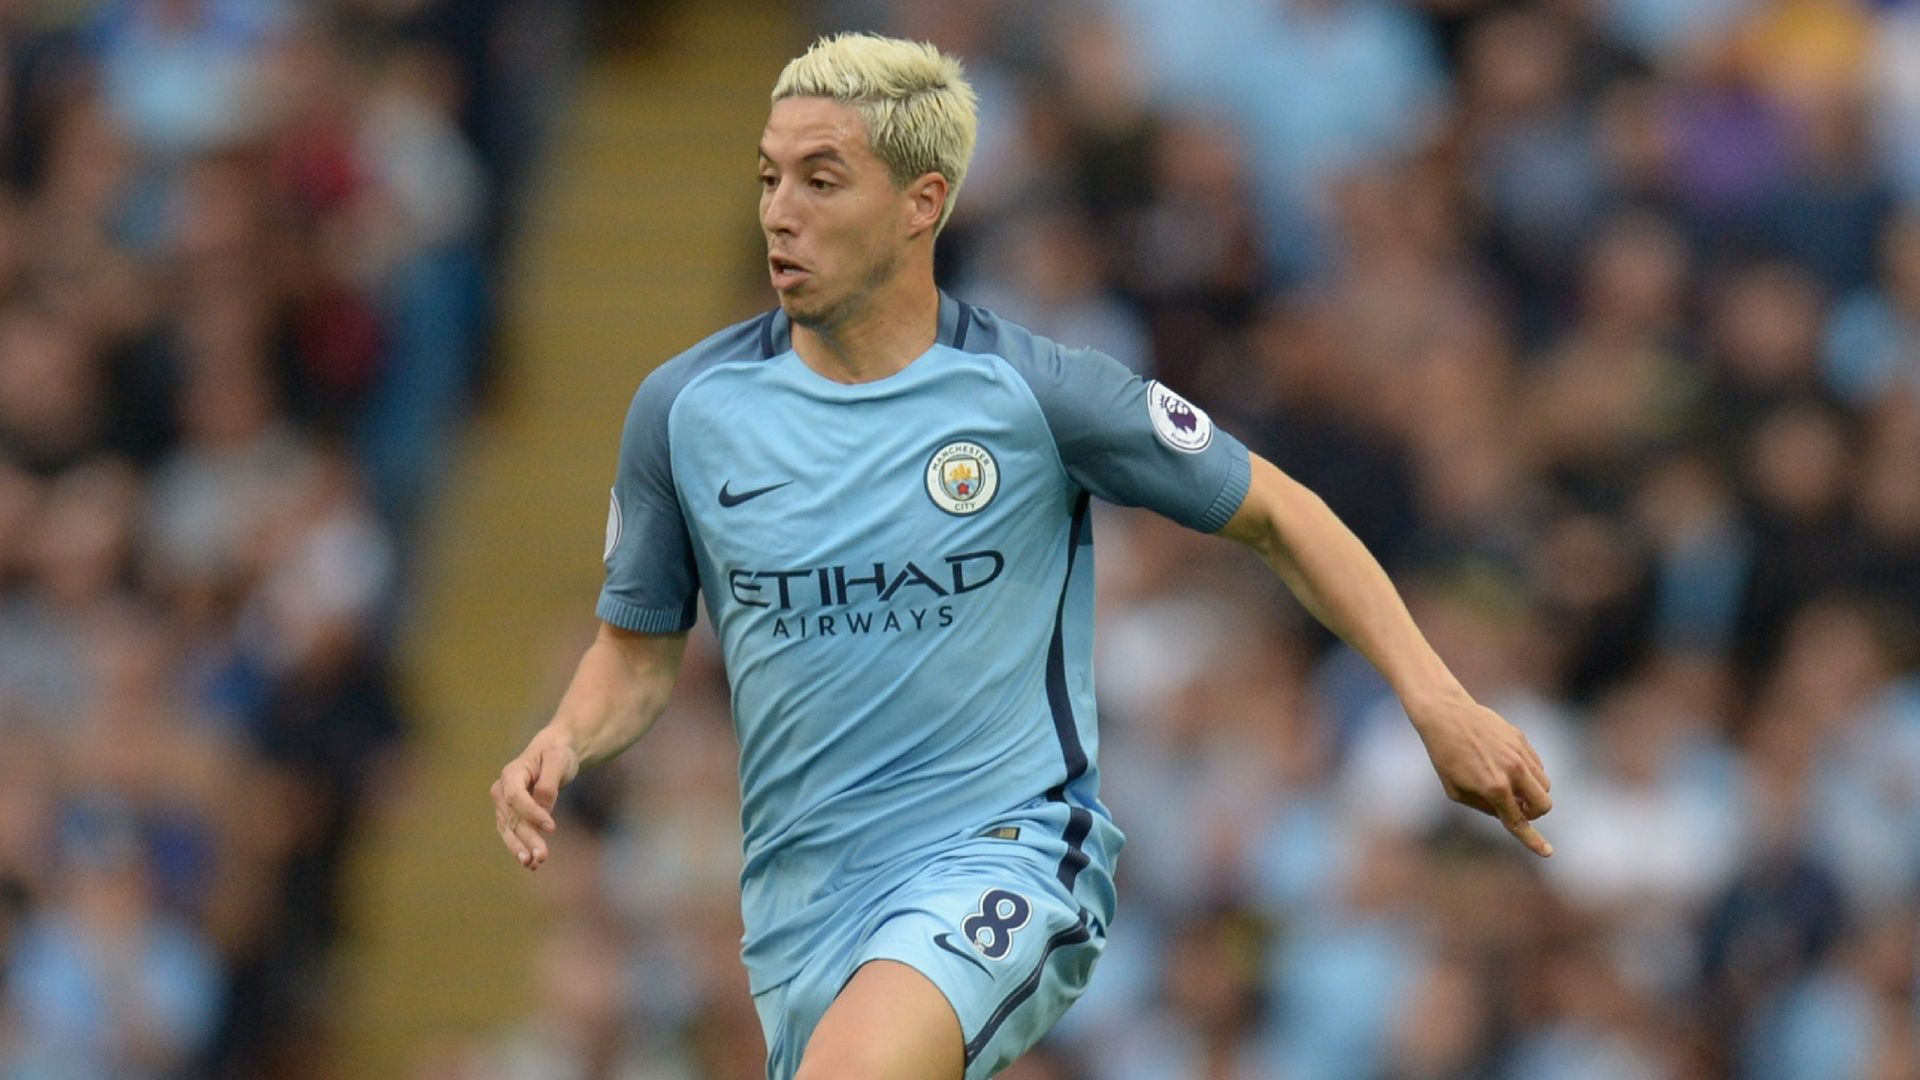 Manchester City midfielder set for surprise Turkey switch